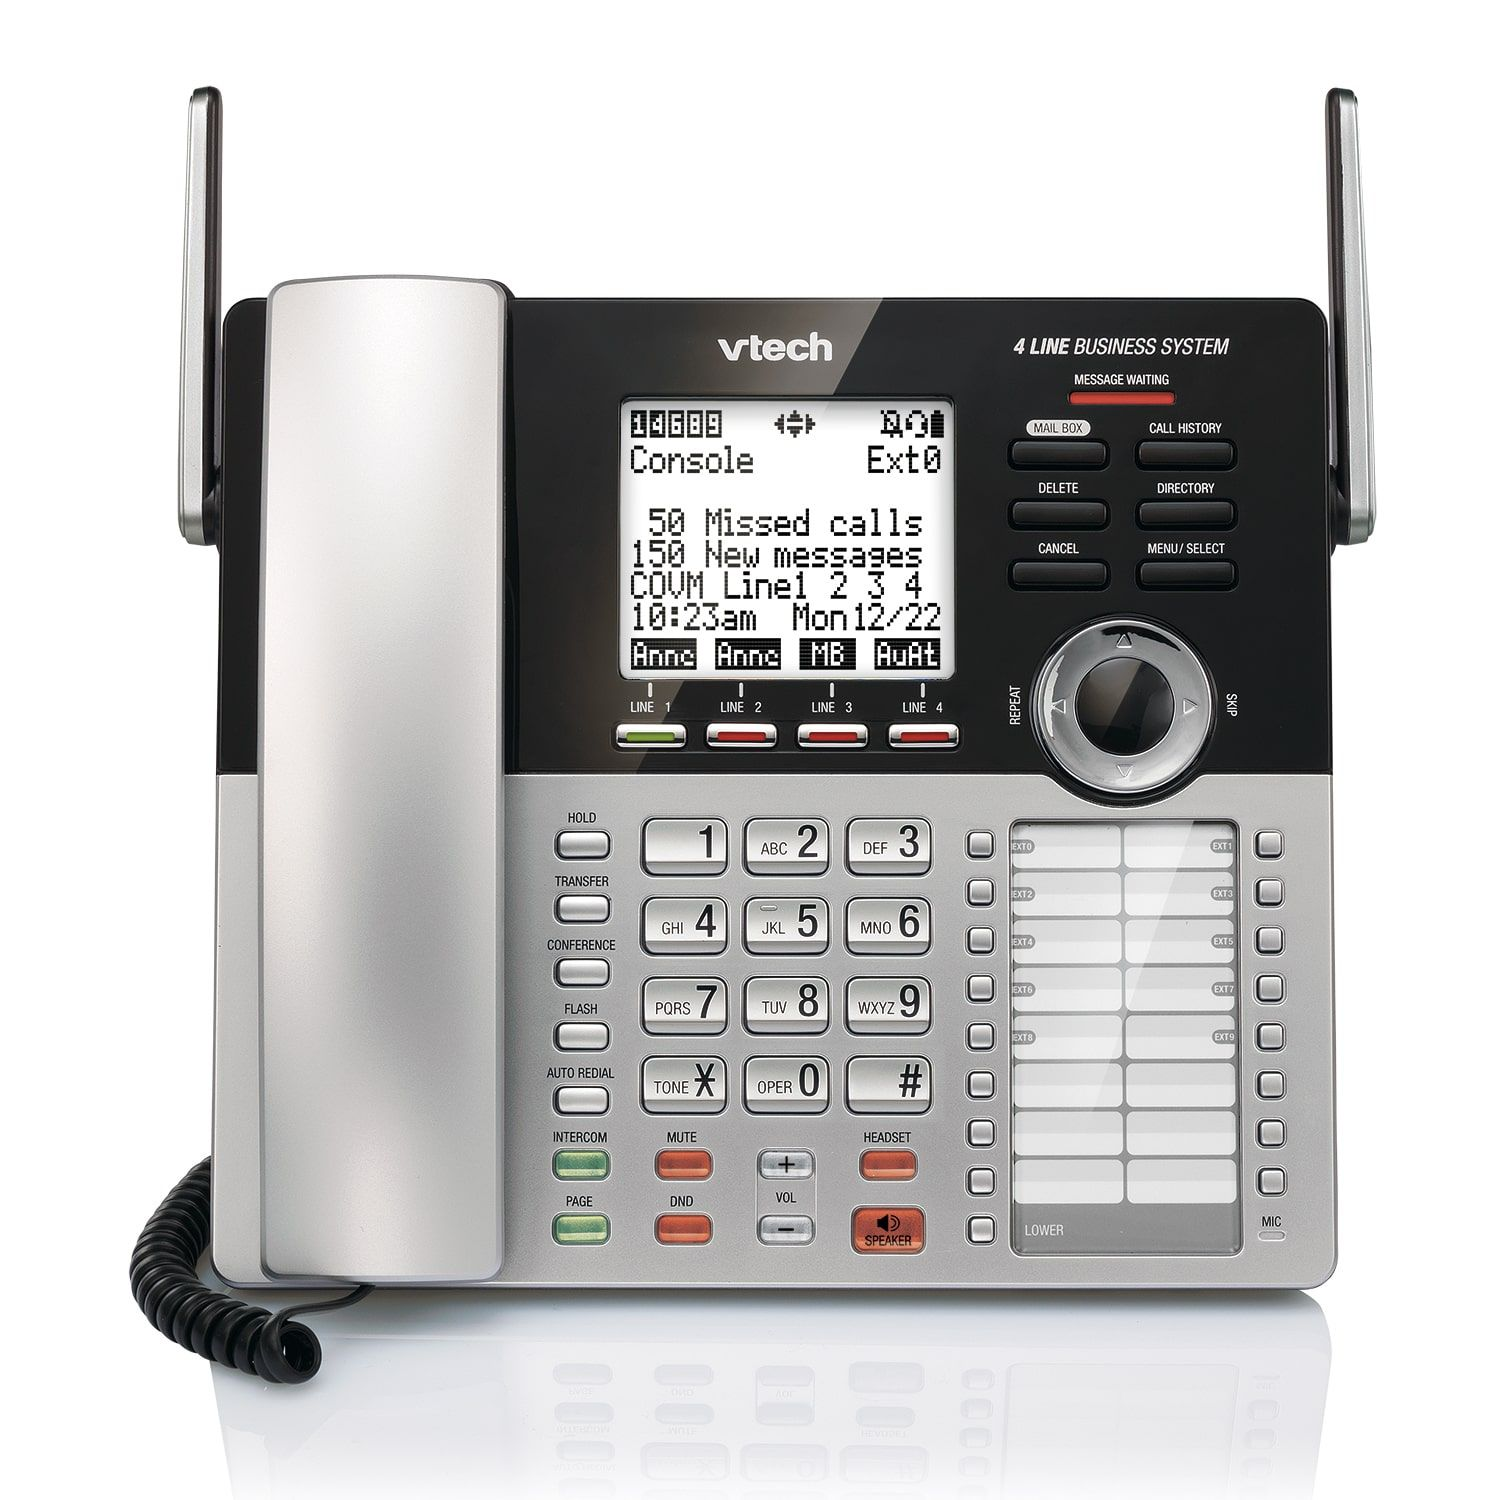 VTech phone for small business